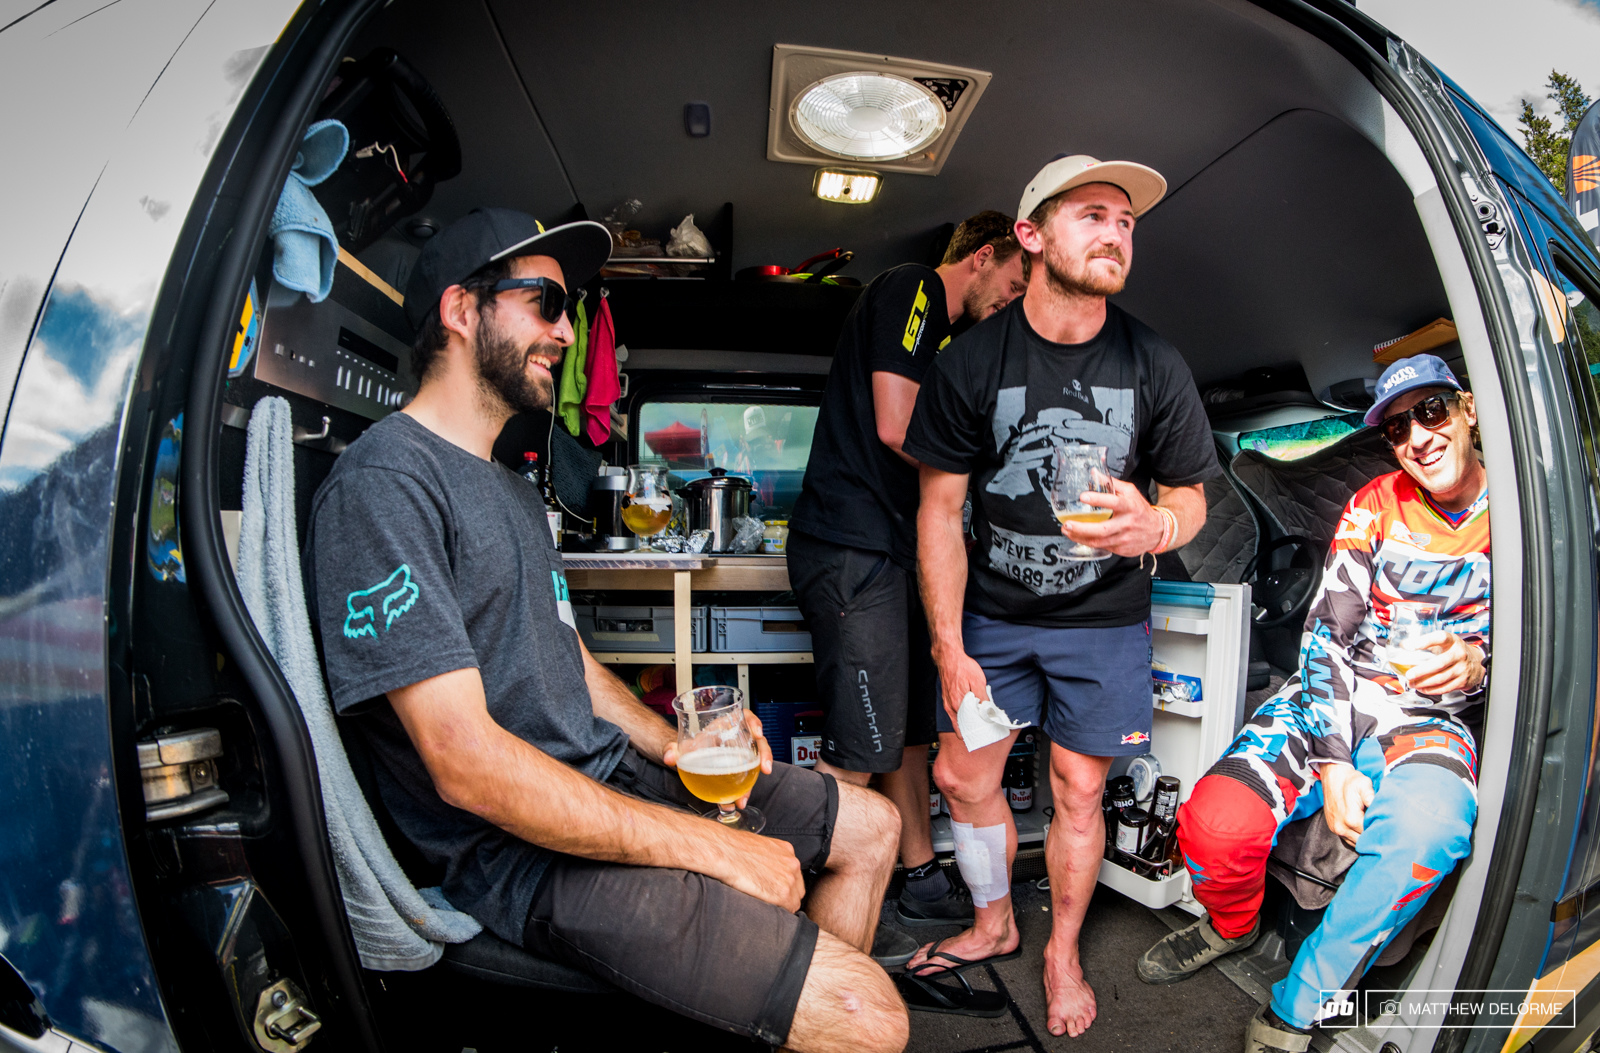 It was good times post race at the GT pits as Brook Peaty and Iago all enjoy a little post race beer.